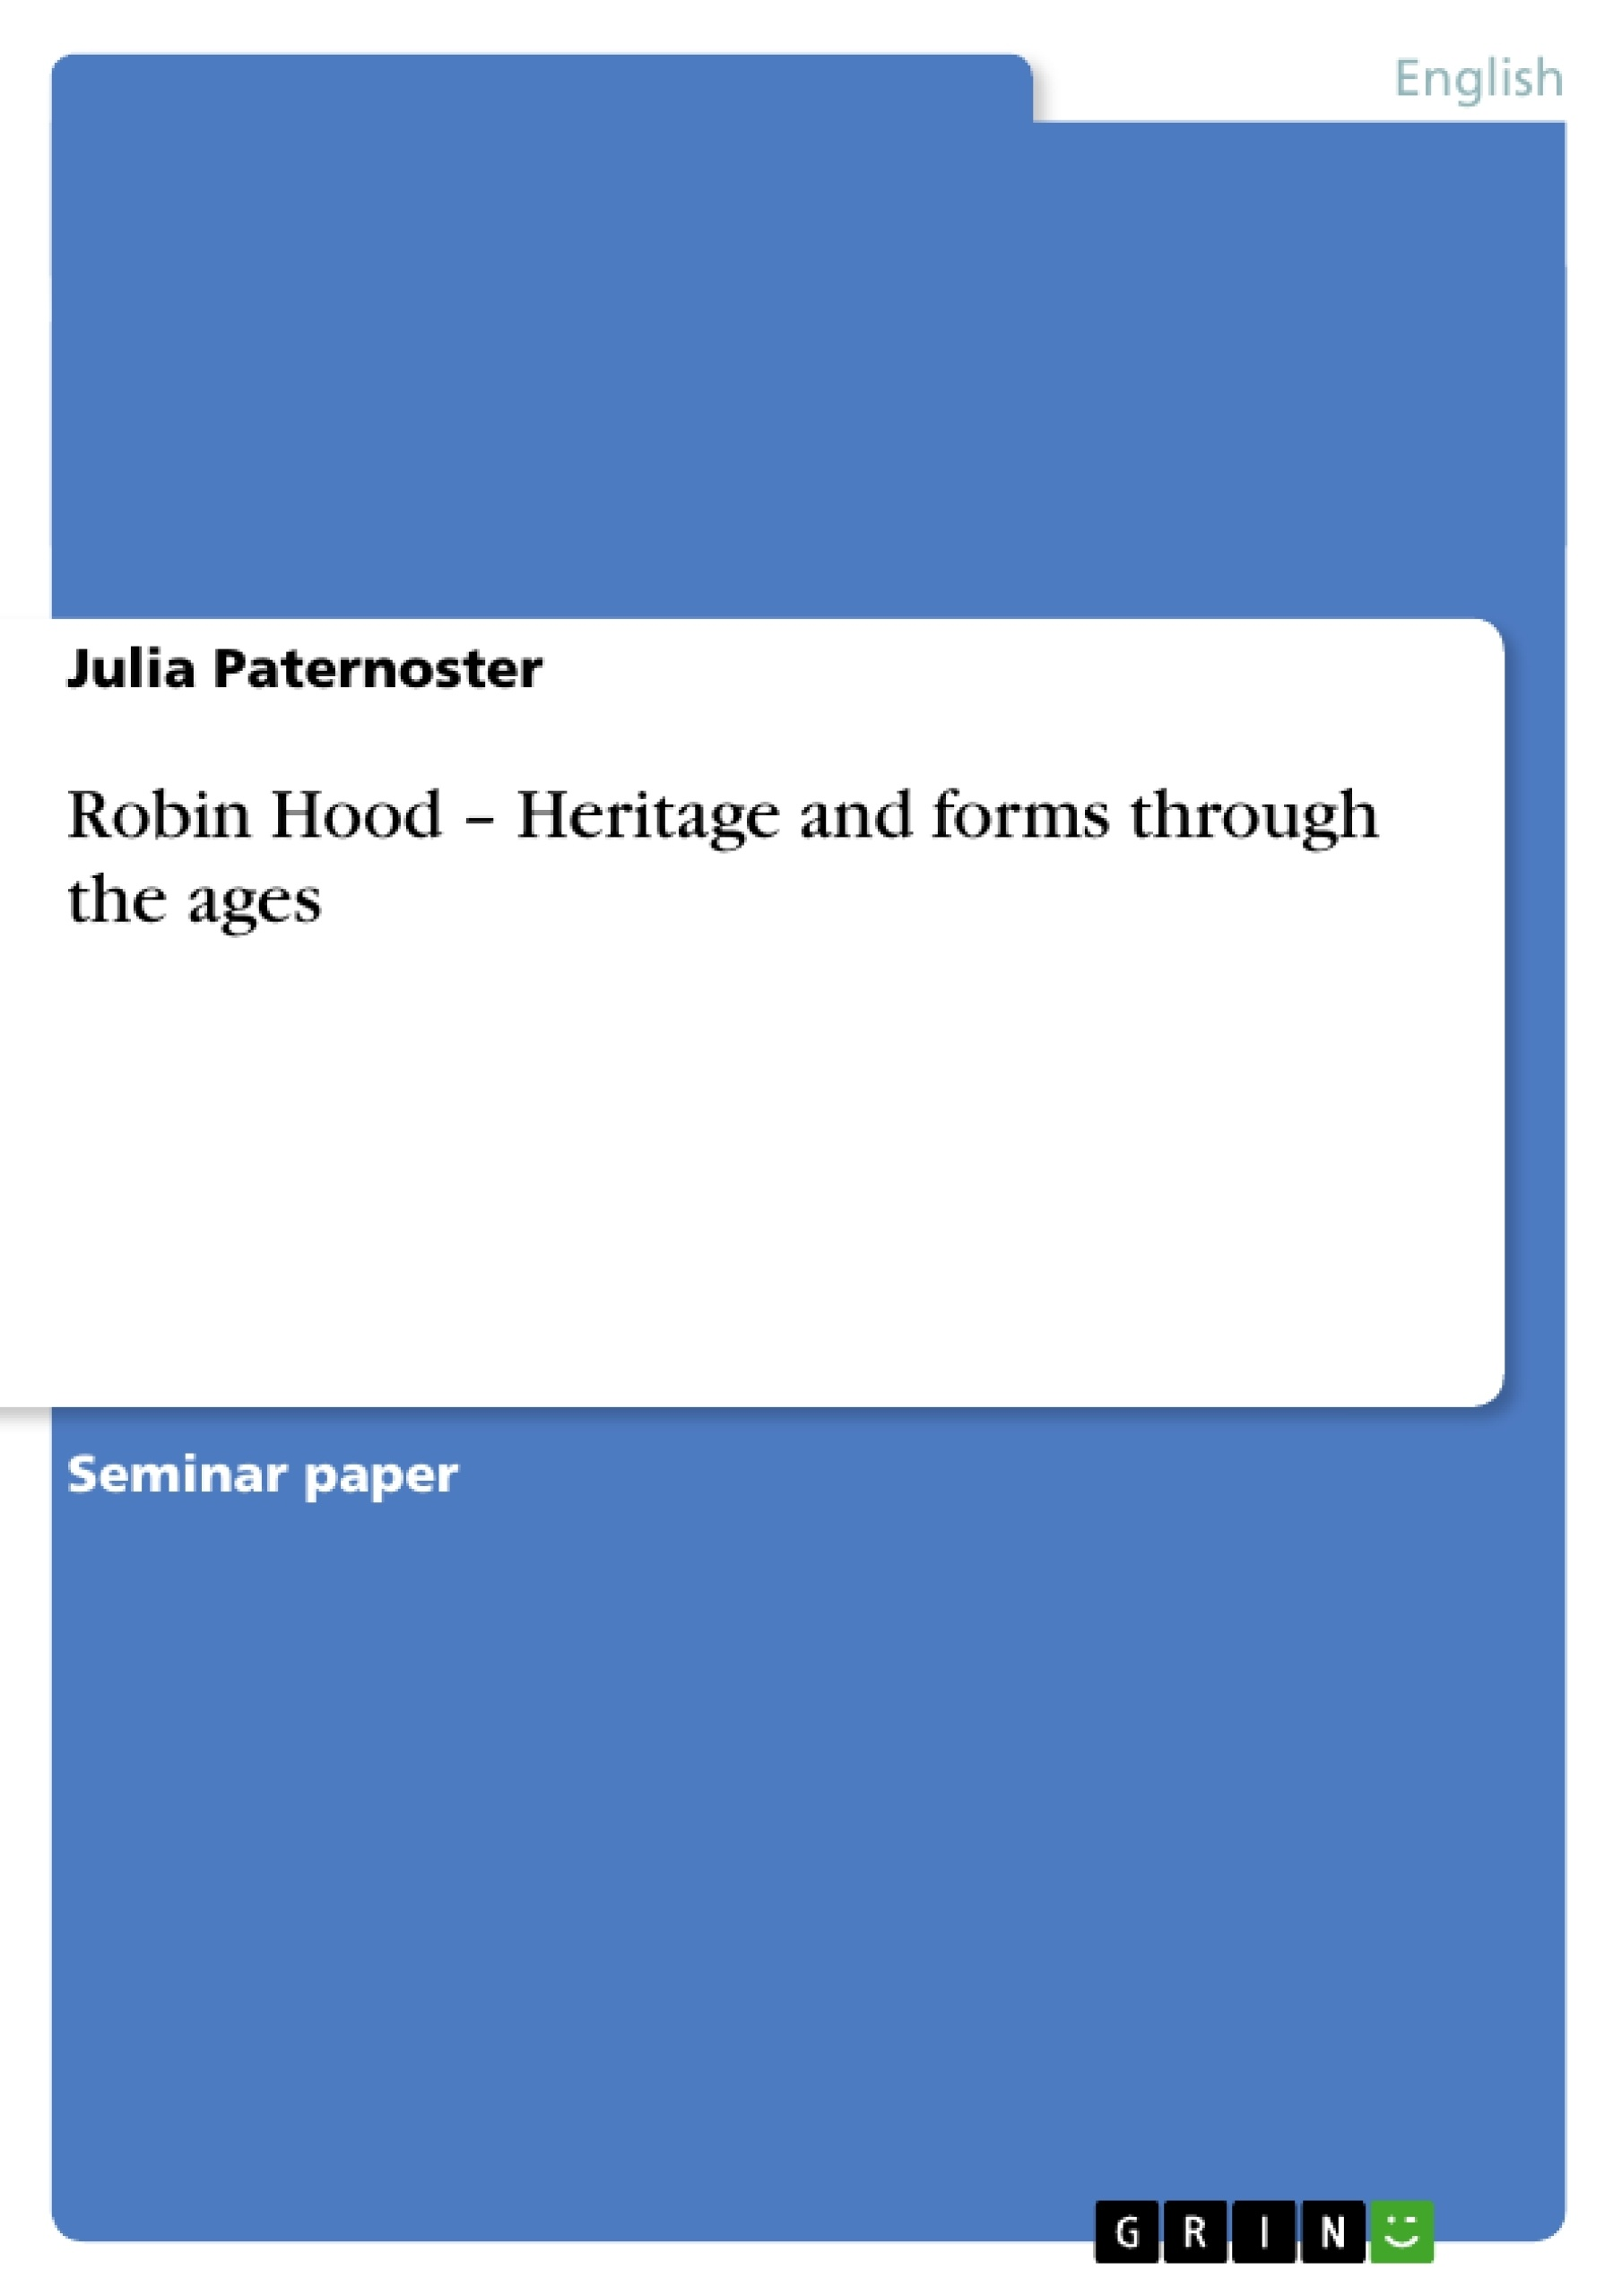 Title: Robin Hood – Heritage and forms through the ages